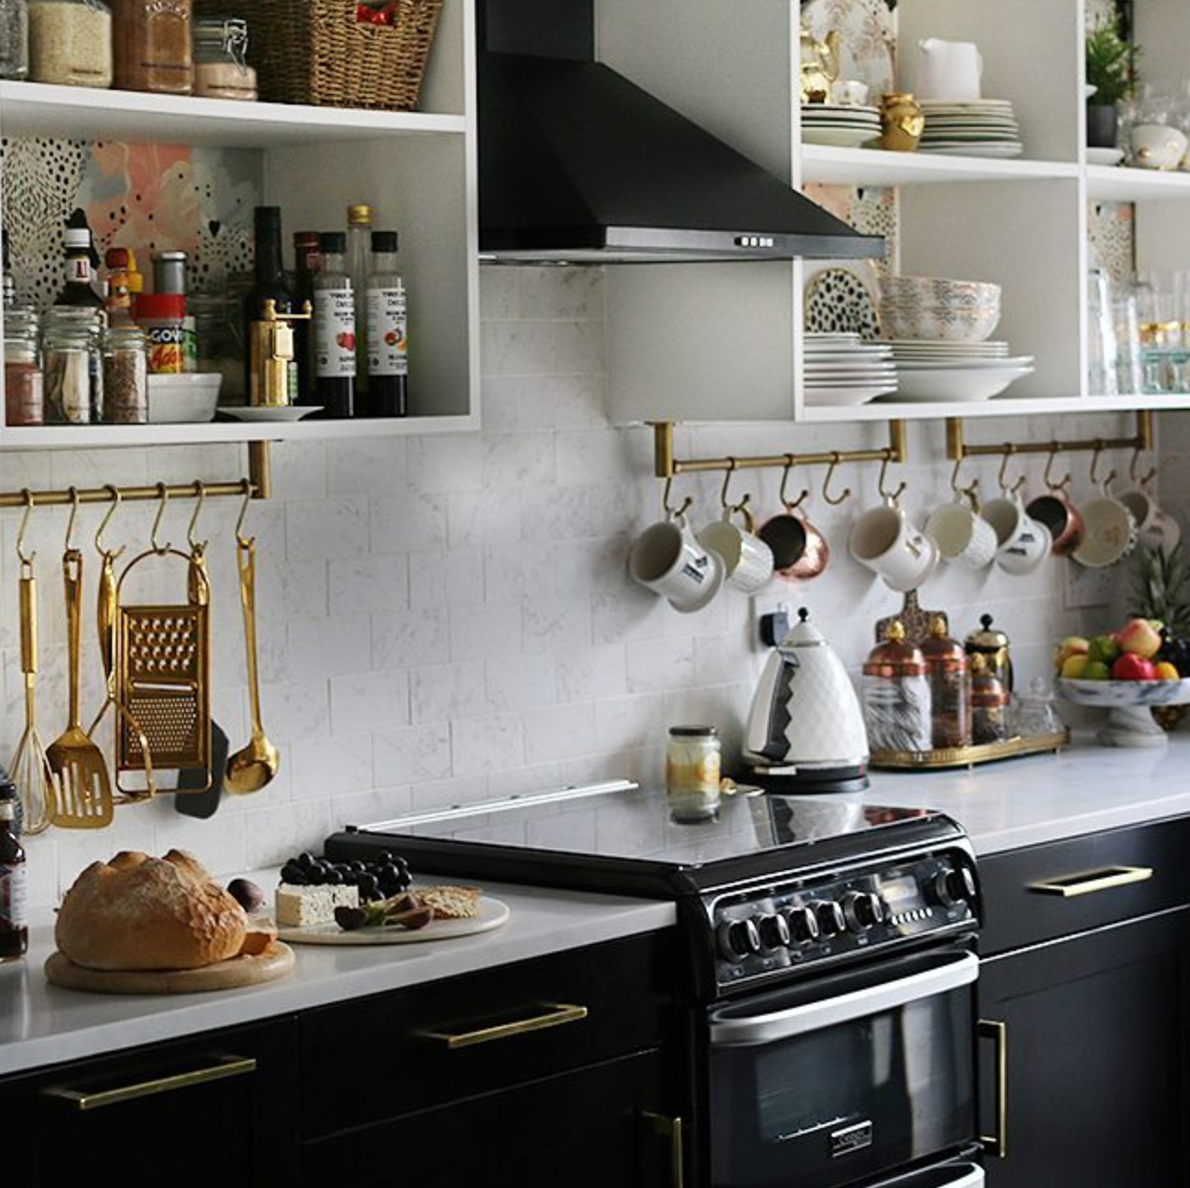 KIMBERLY'S KITCHEN IN HER EDWARDIAN HOME IN MANCHESTER